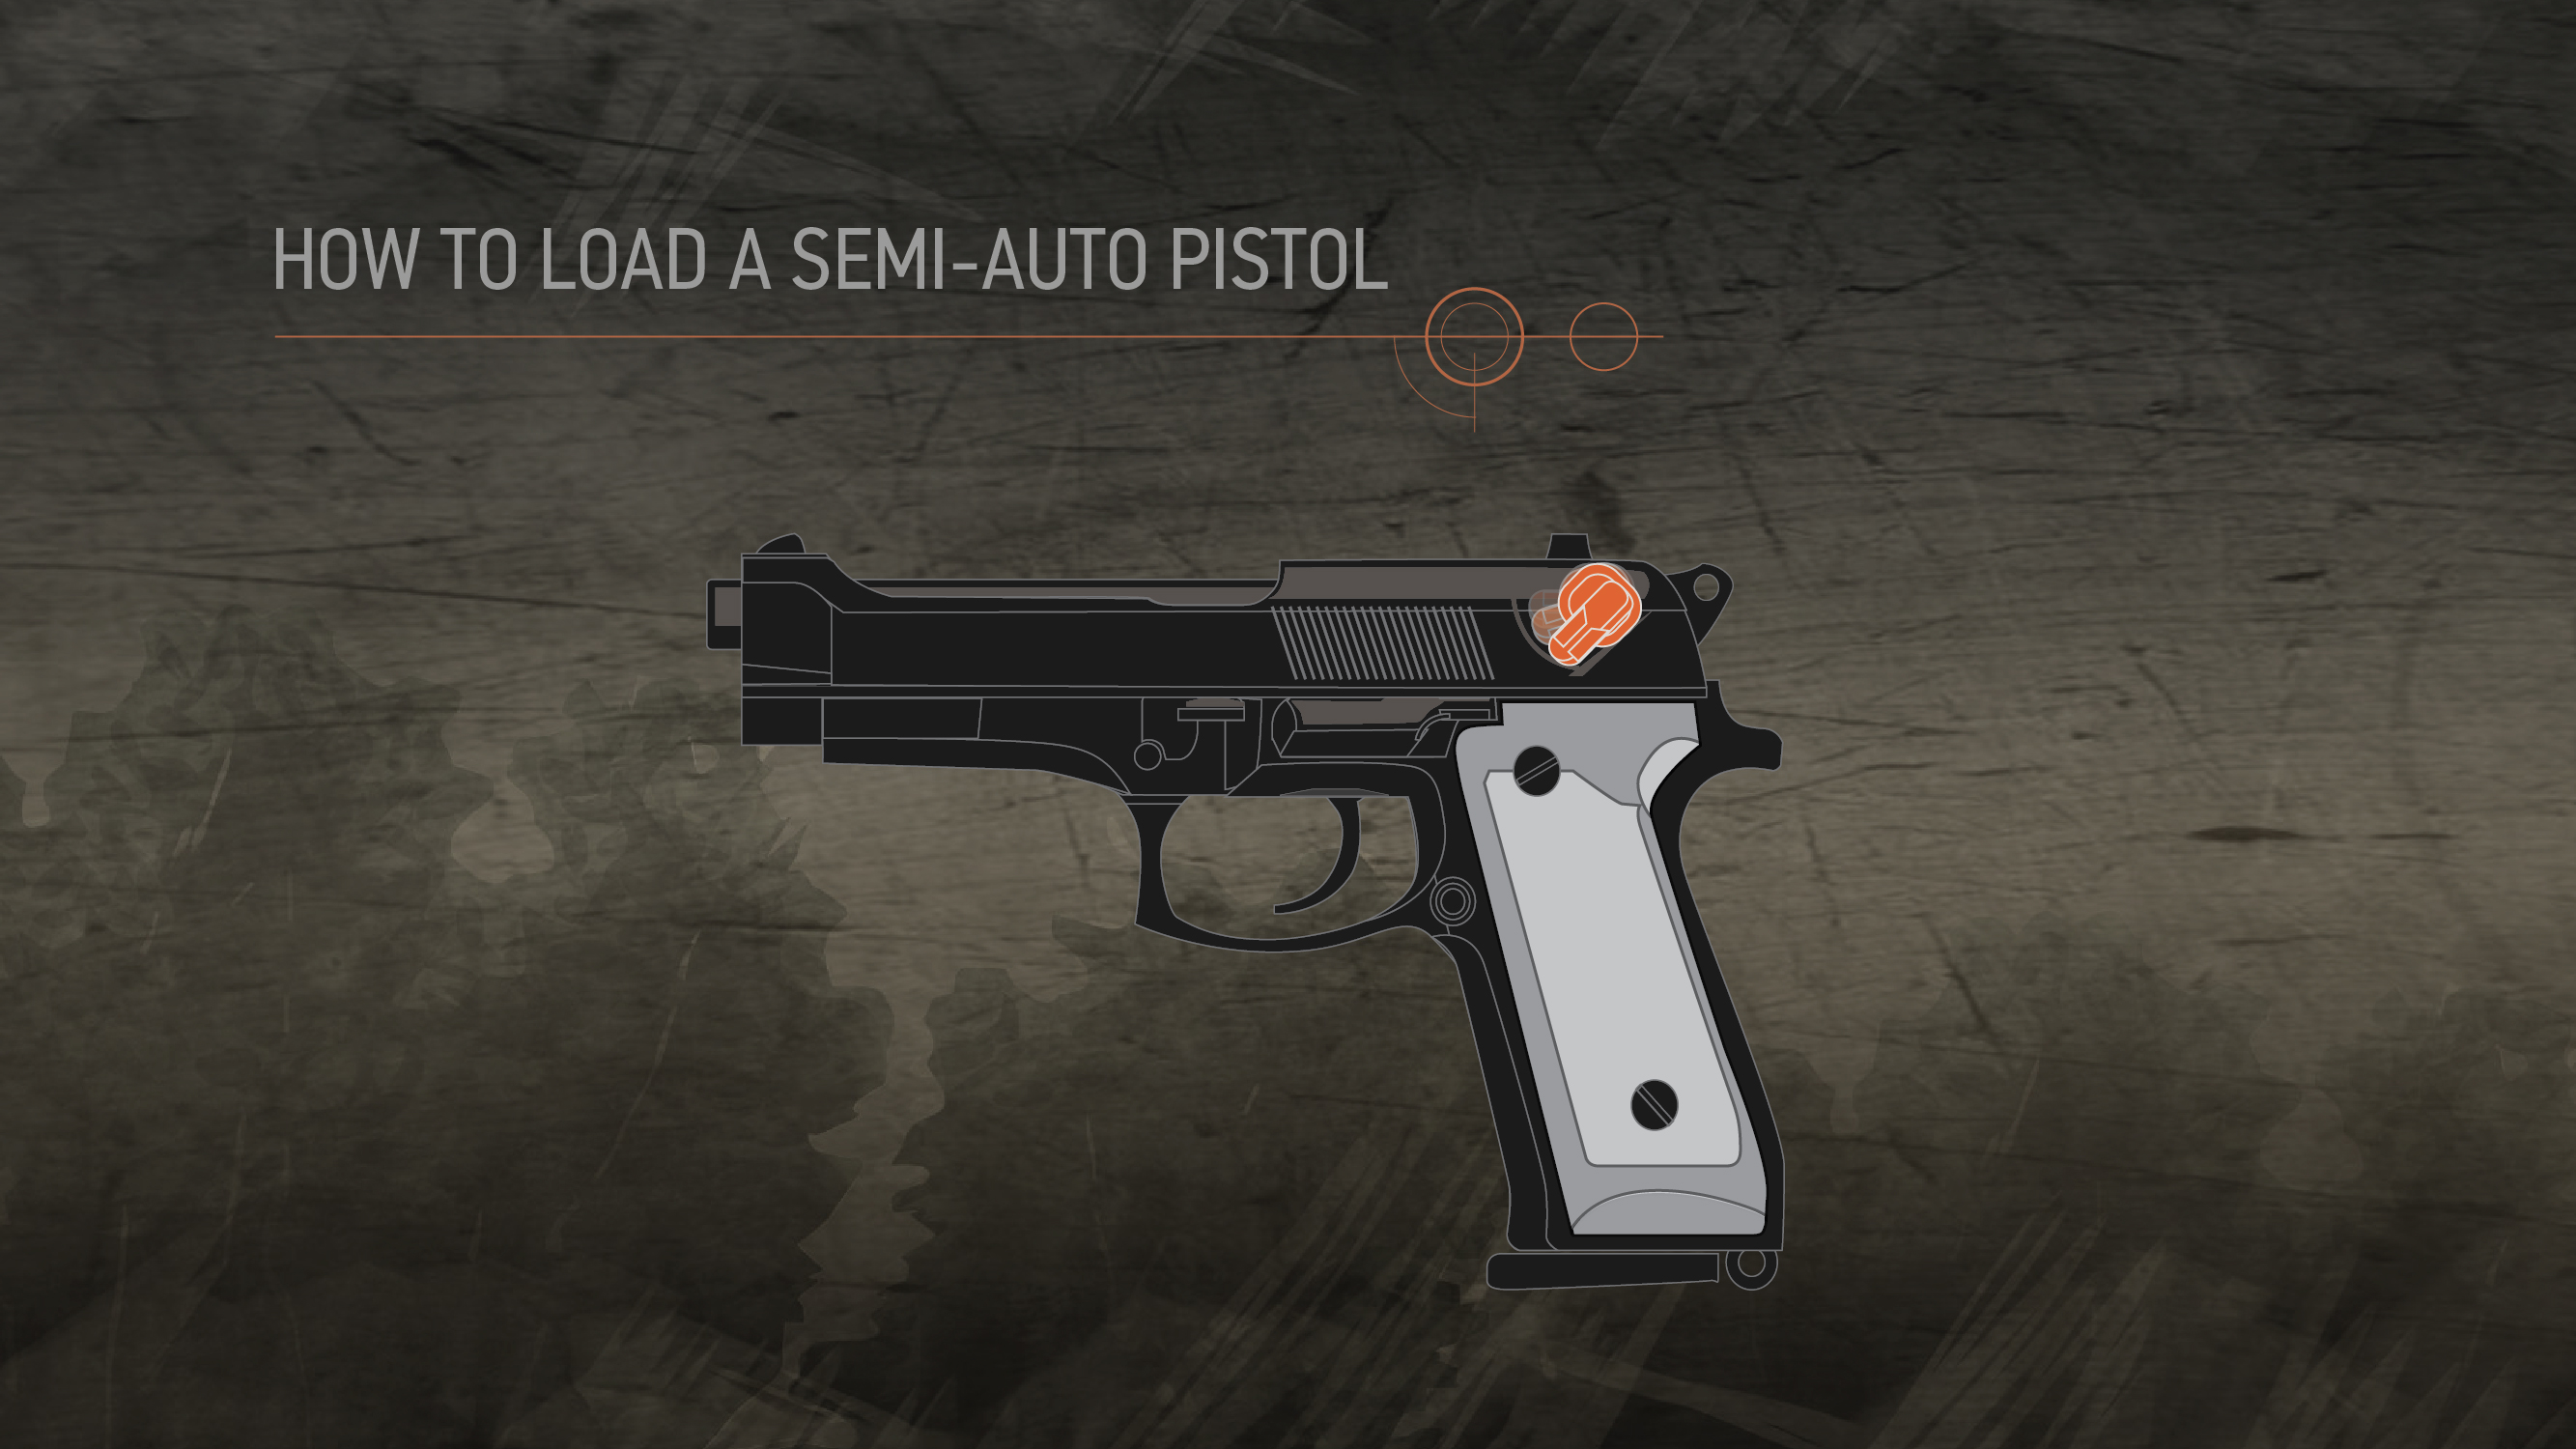 Illustration of a semi-auto pistol with the safety highlighted in orange.